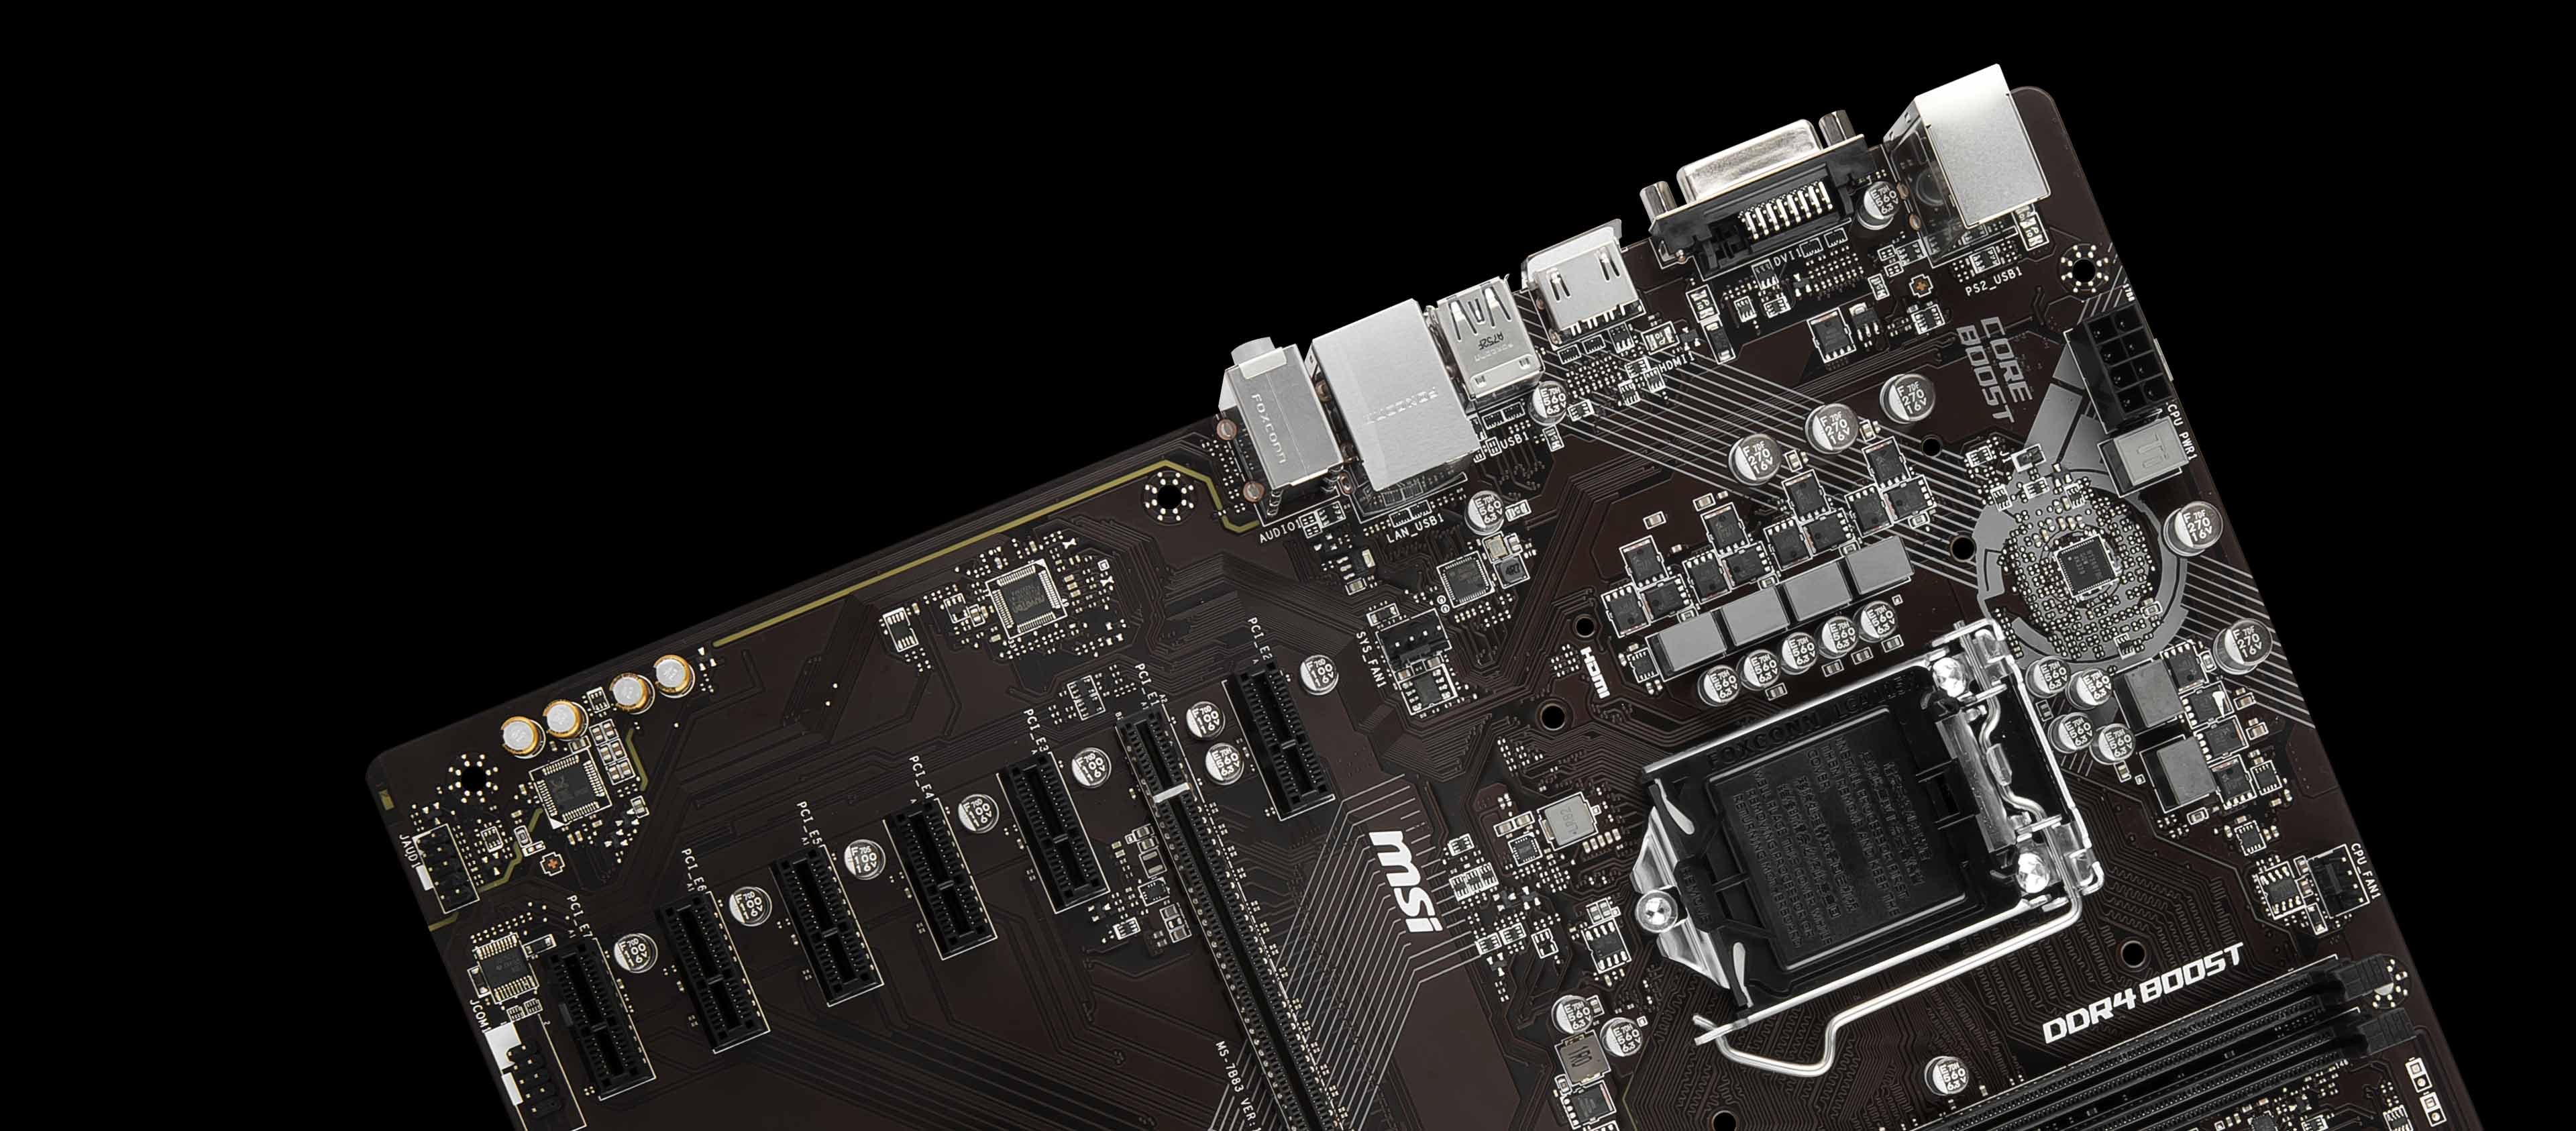 H310-A PRO | Motherboard - The world leader in motherboard